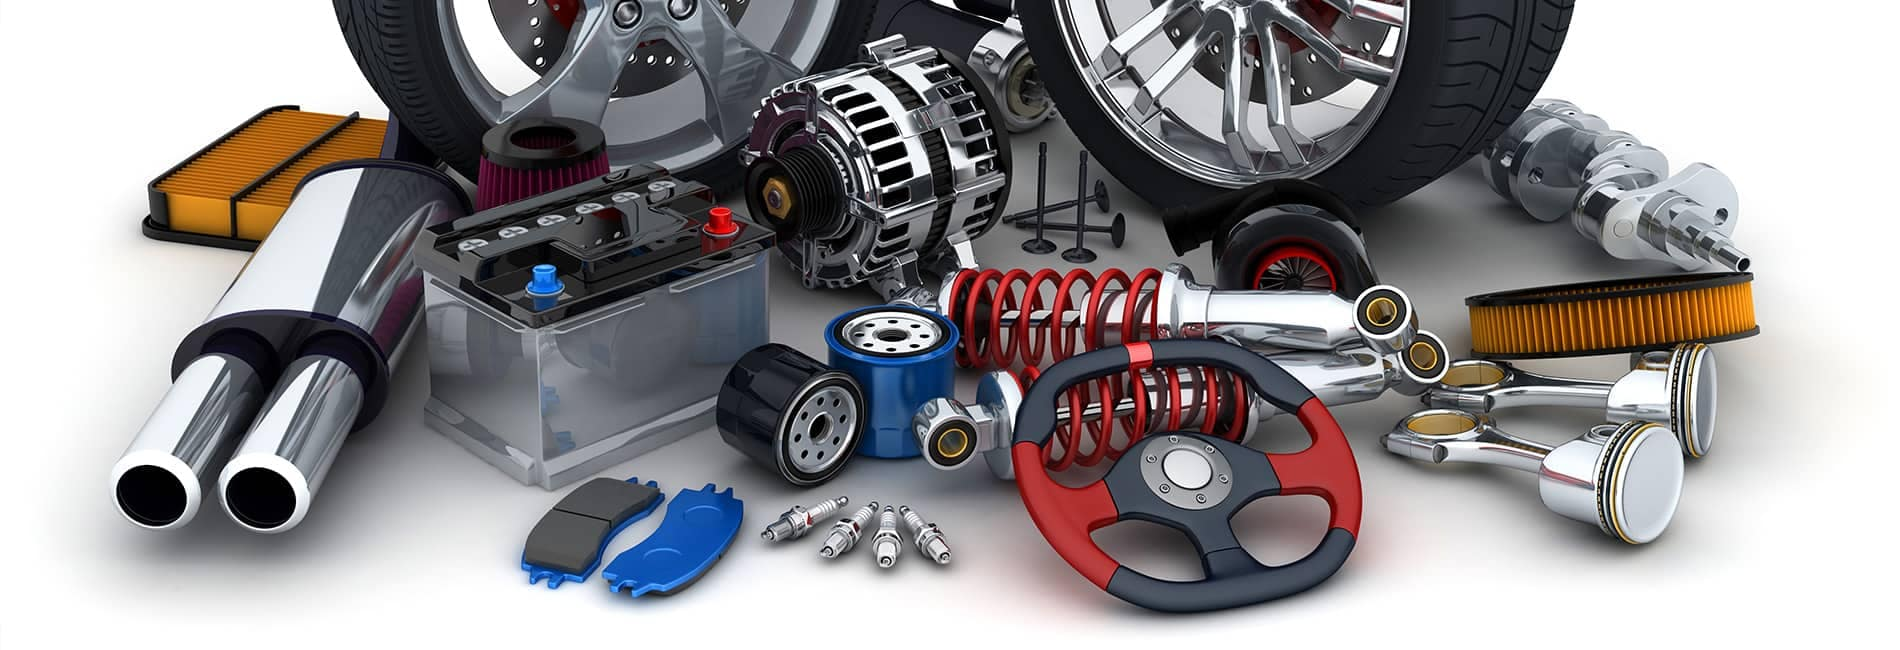 a large amount of car parts in an organized mess against a white background that are generic for legal reasons